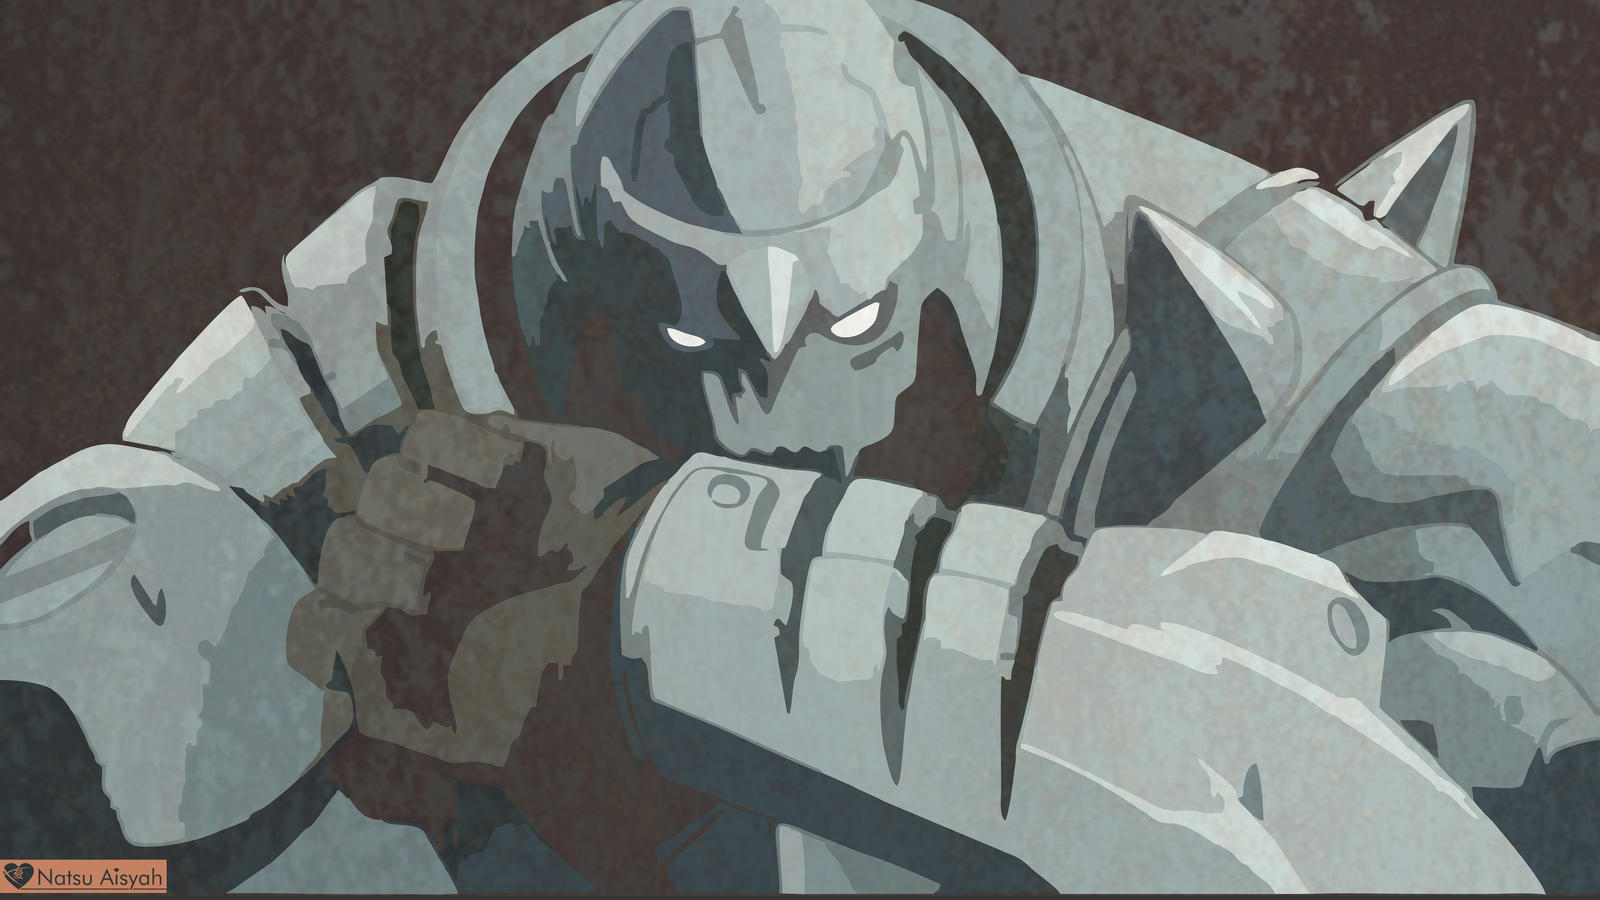 alphonse elric simplified wallpaper - photo #7